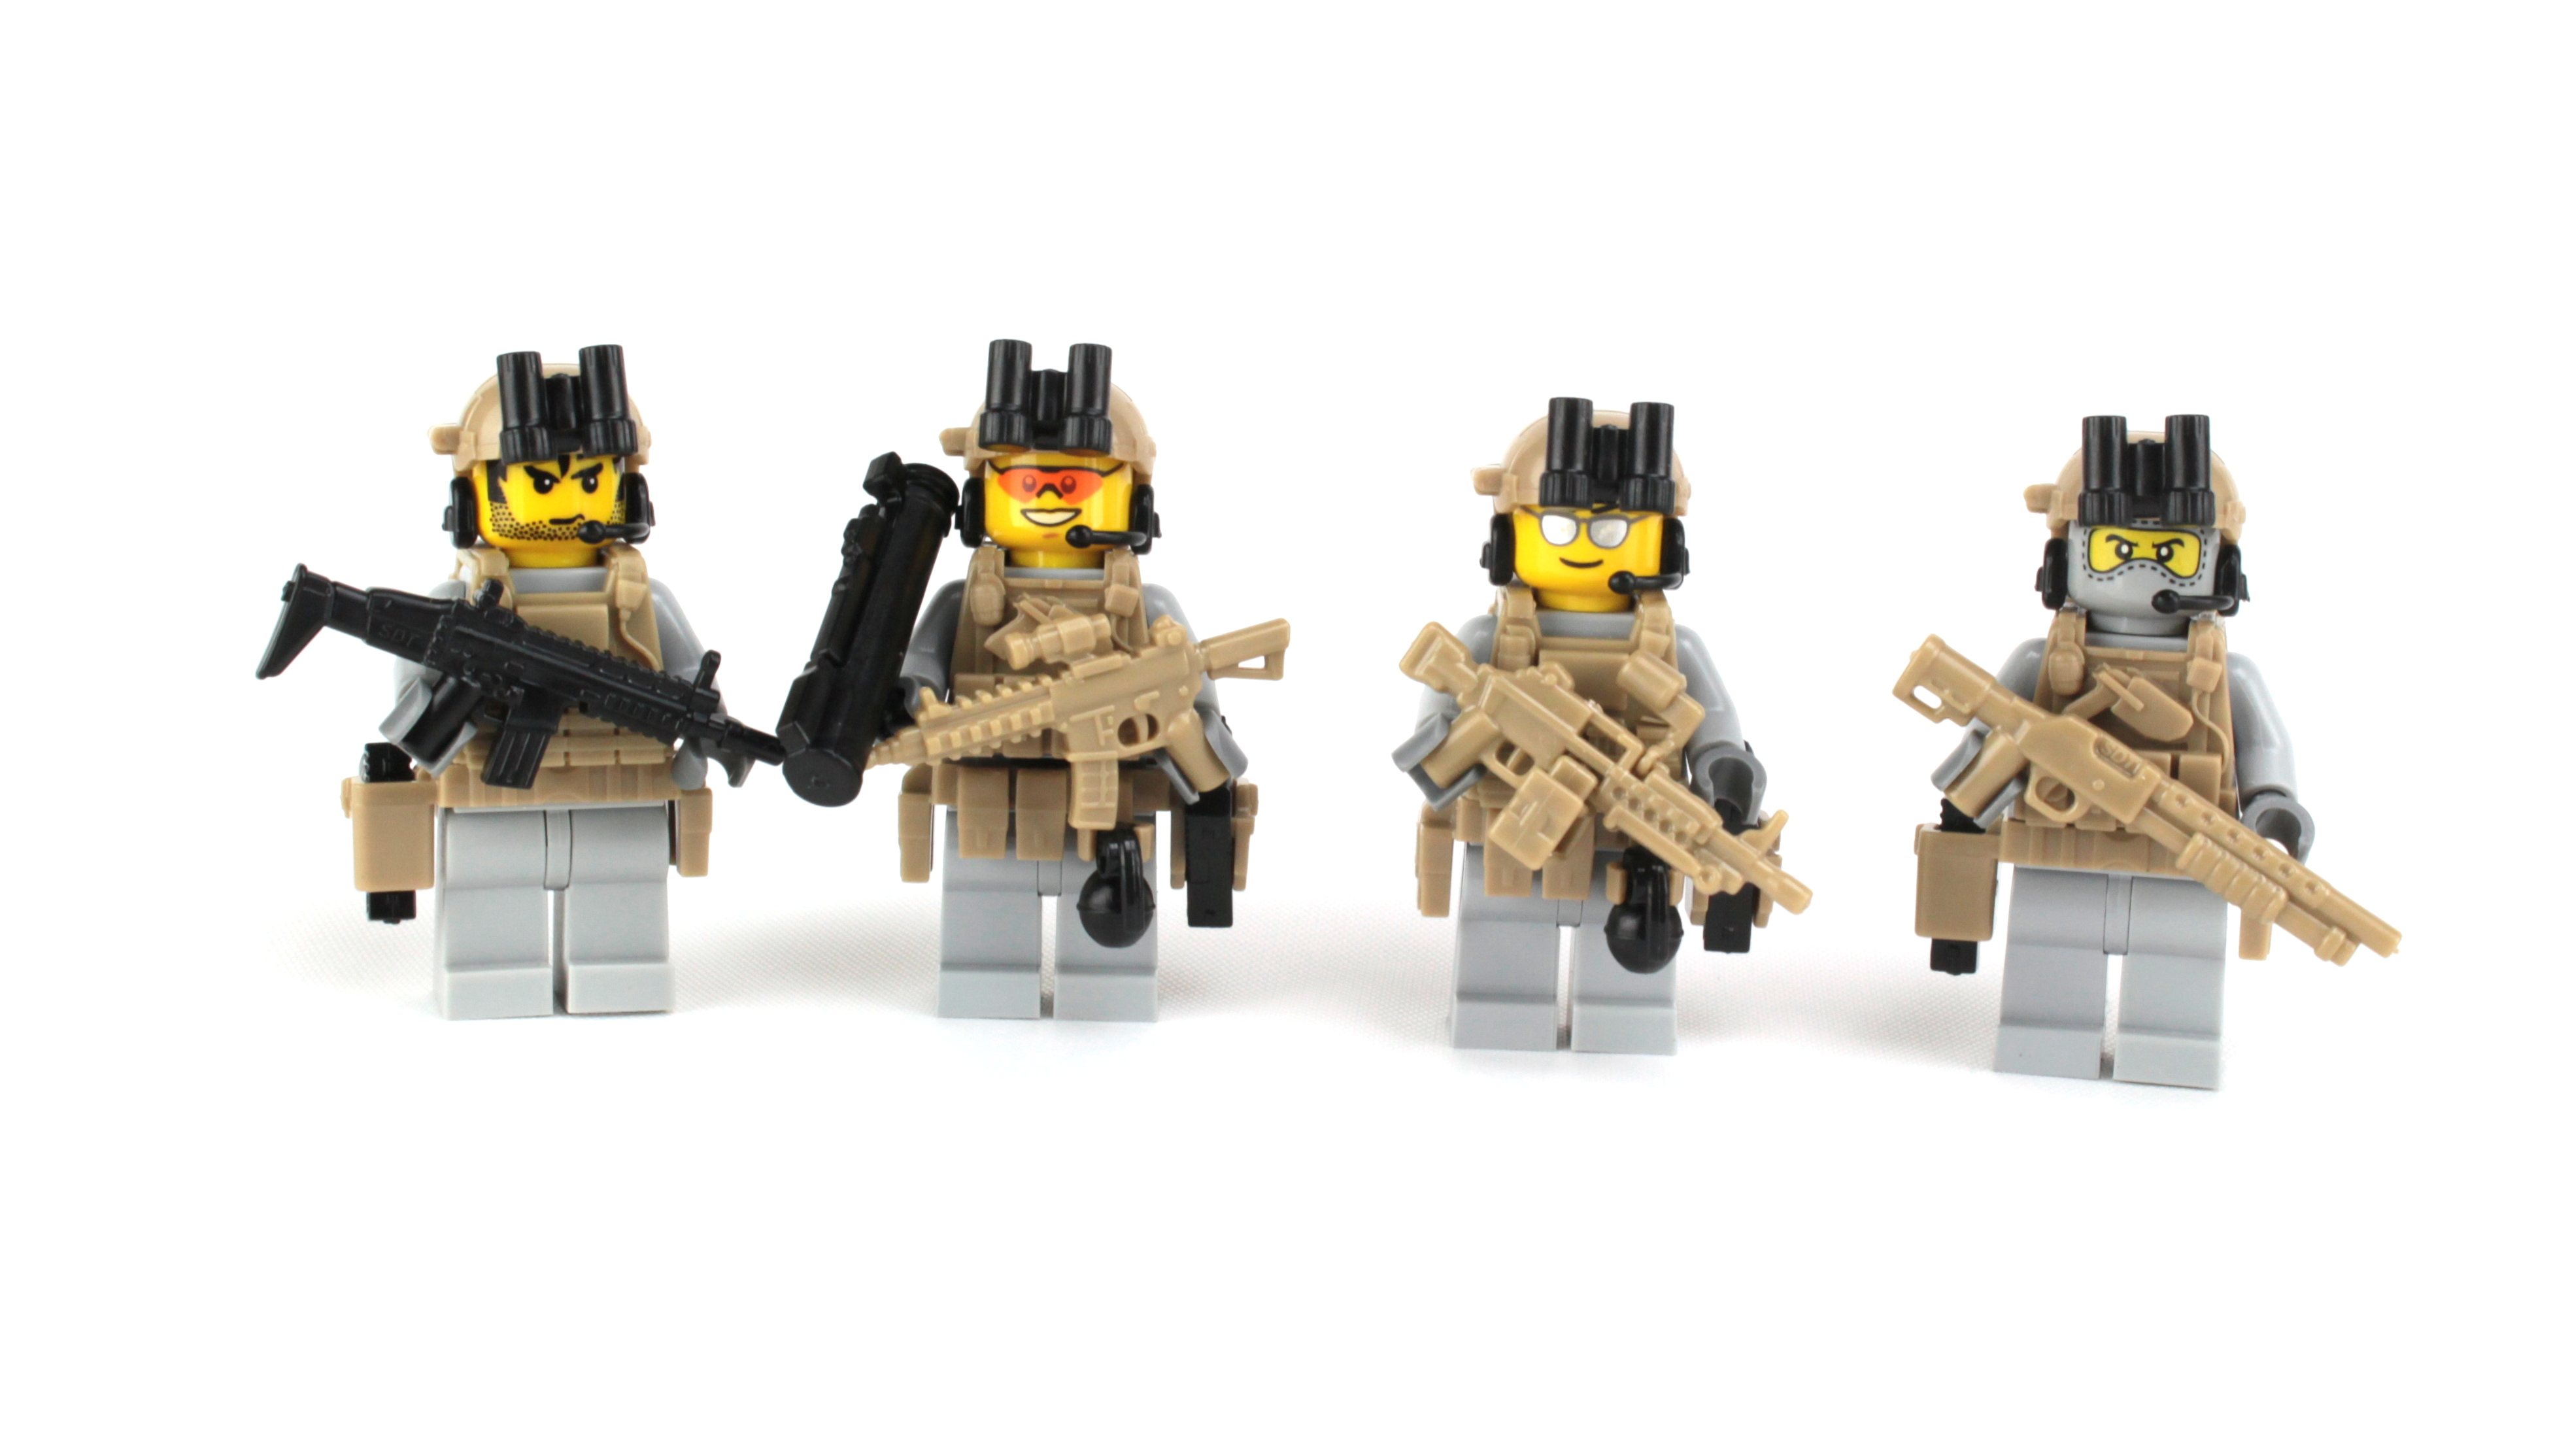 U.S. Army Rangers Complete Squad Minifigures